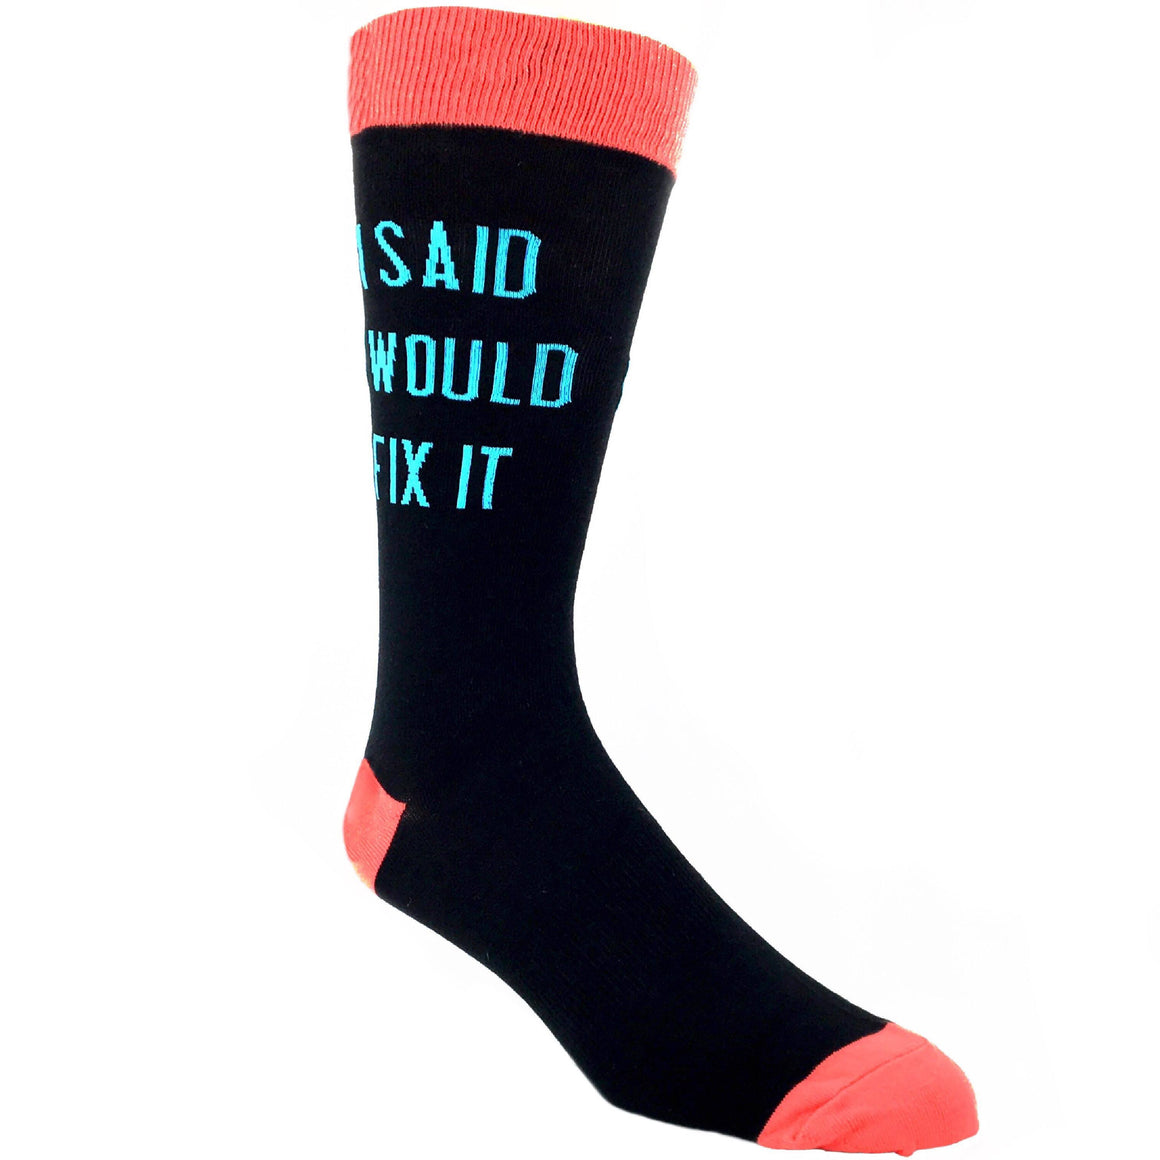 Socks - I Said I Would Fix It Socks